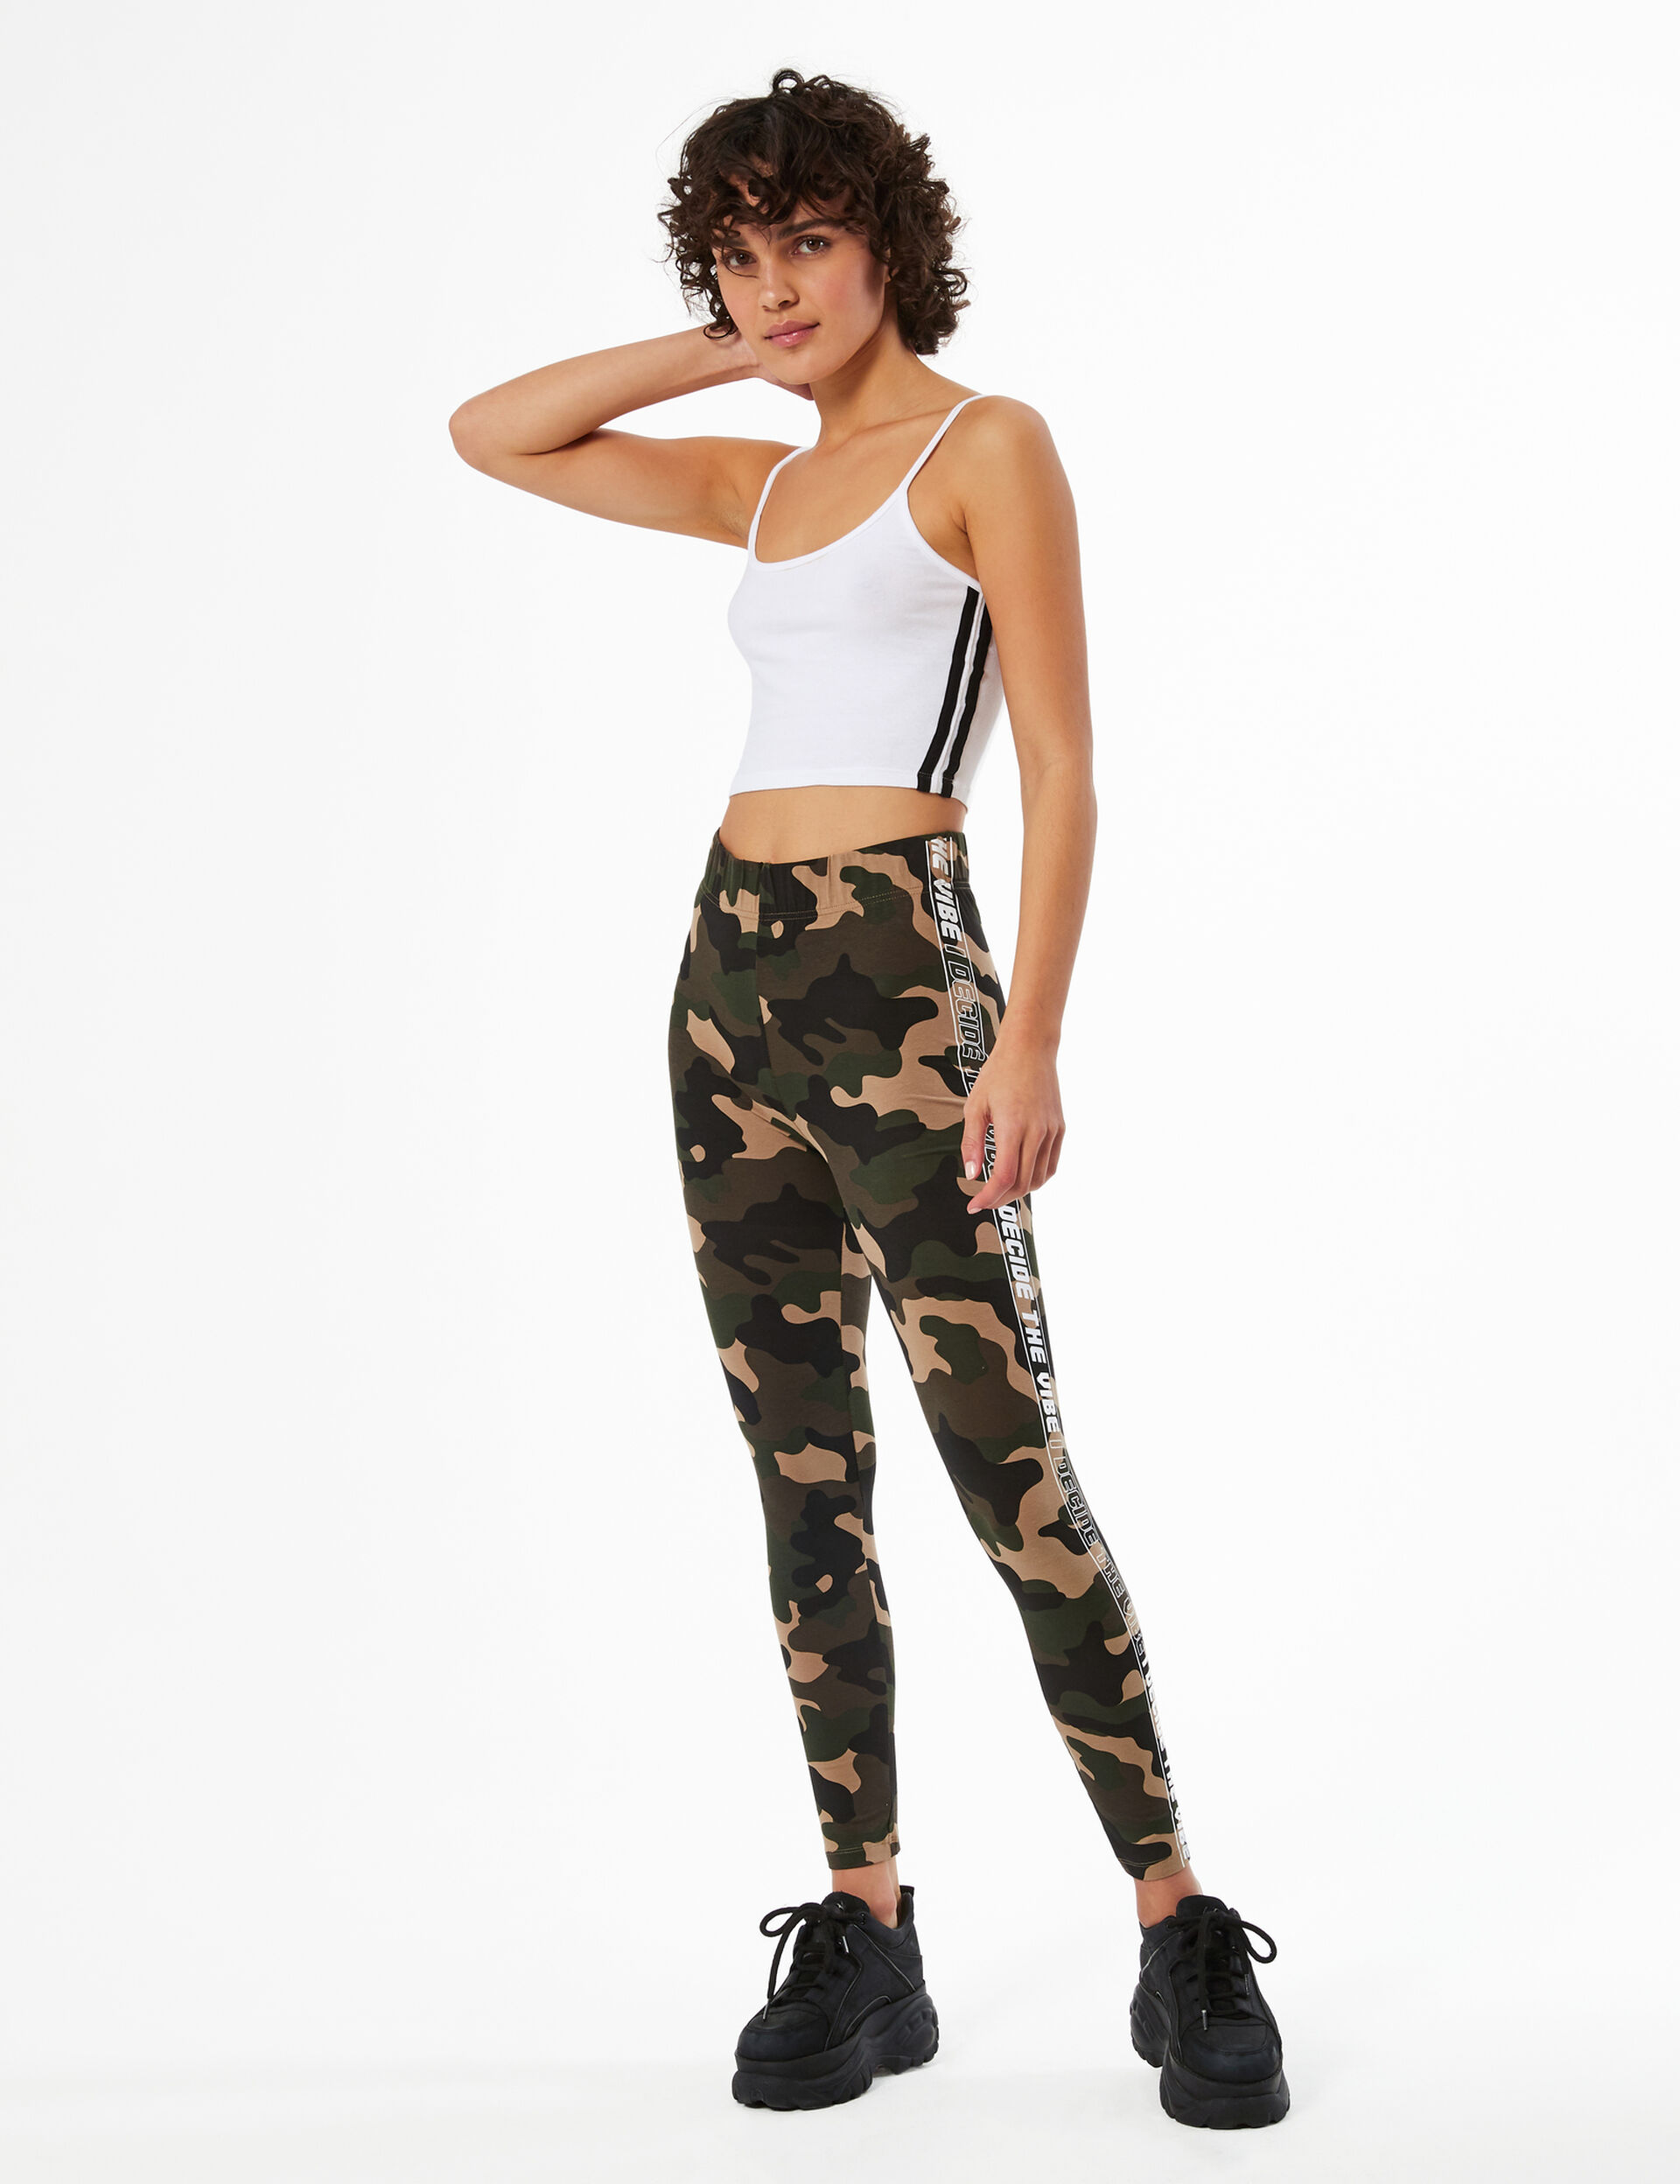 Camouflage leggings with text design trim detail